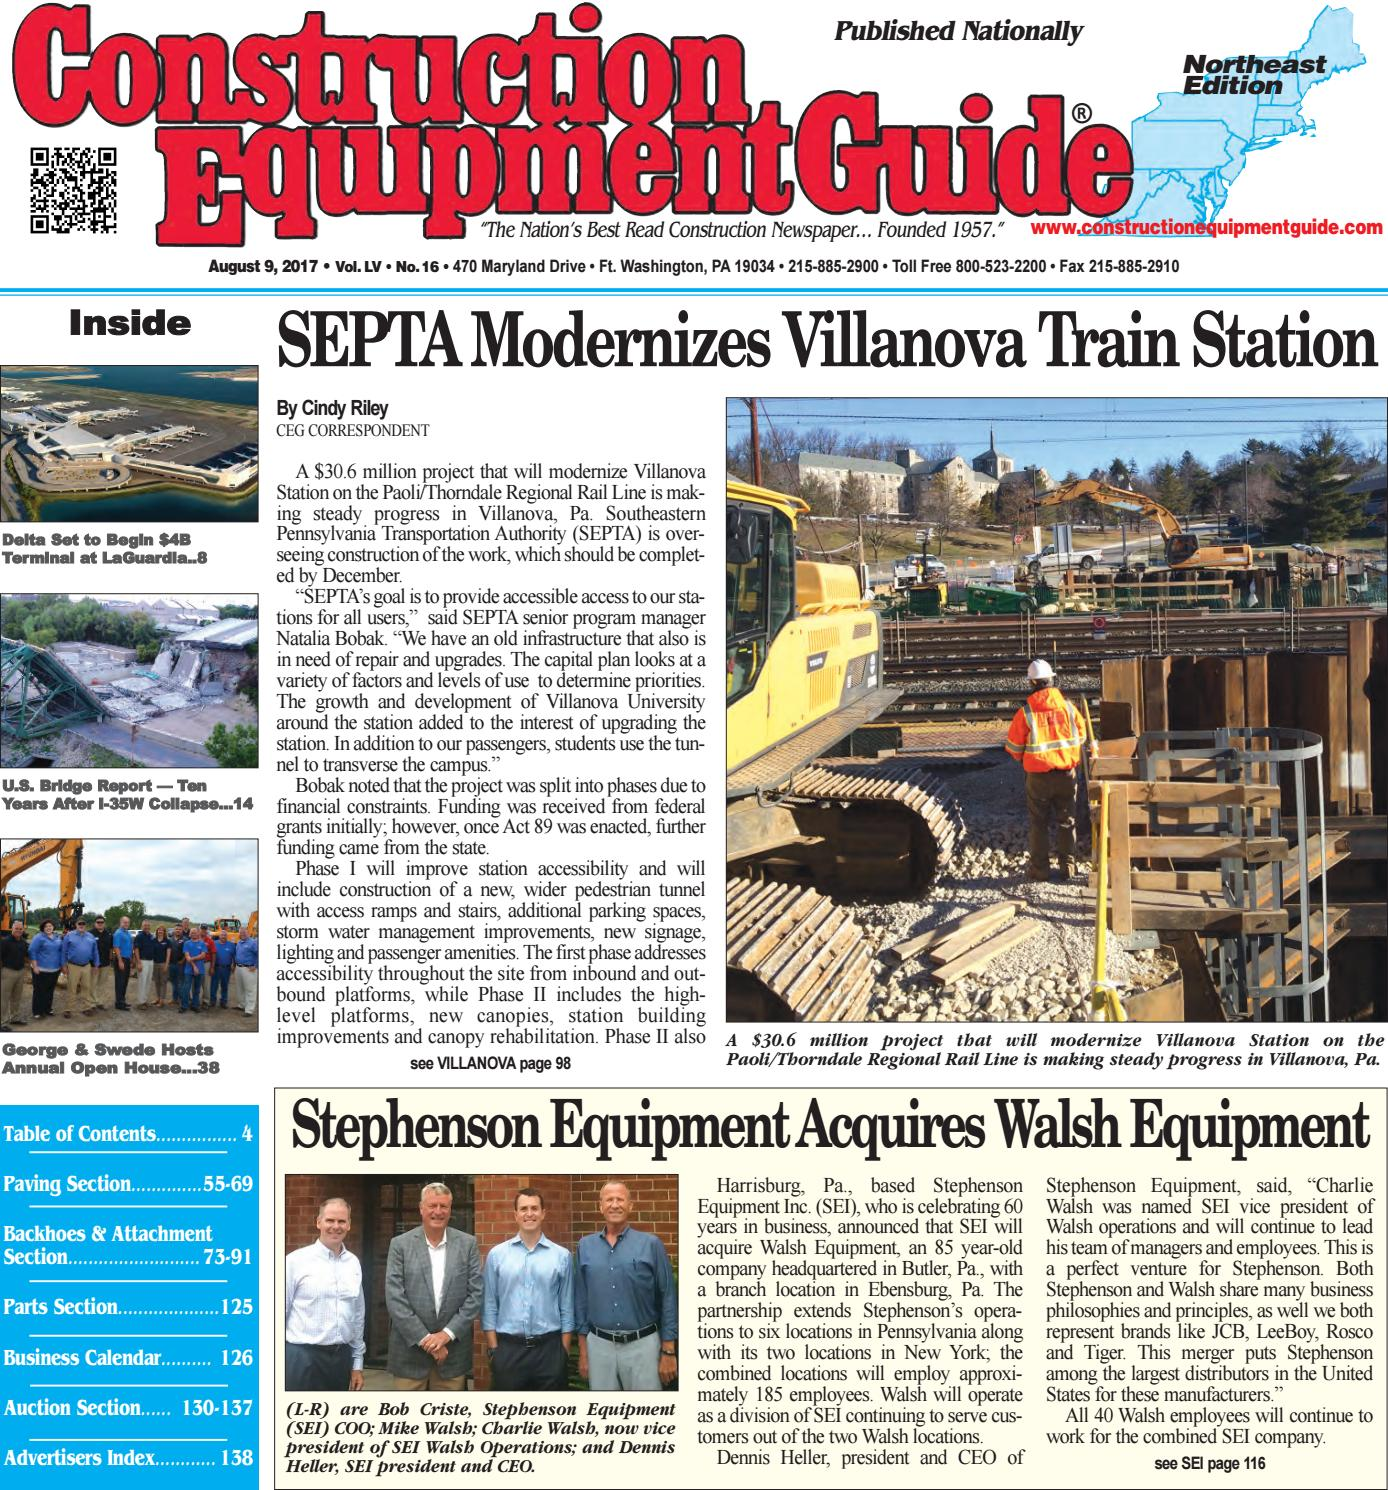 northeast 16 august 9 2017 by construction equipment guide issuu